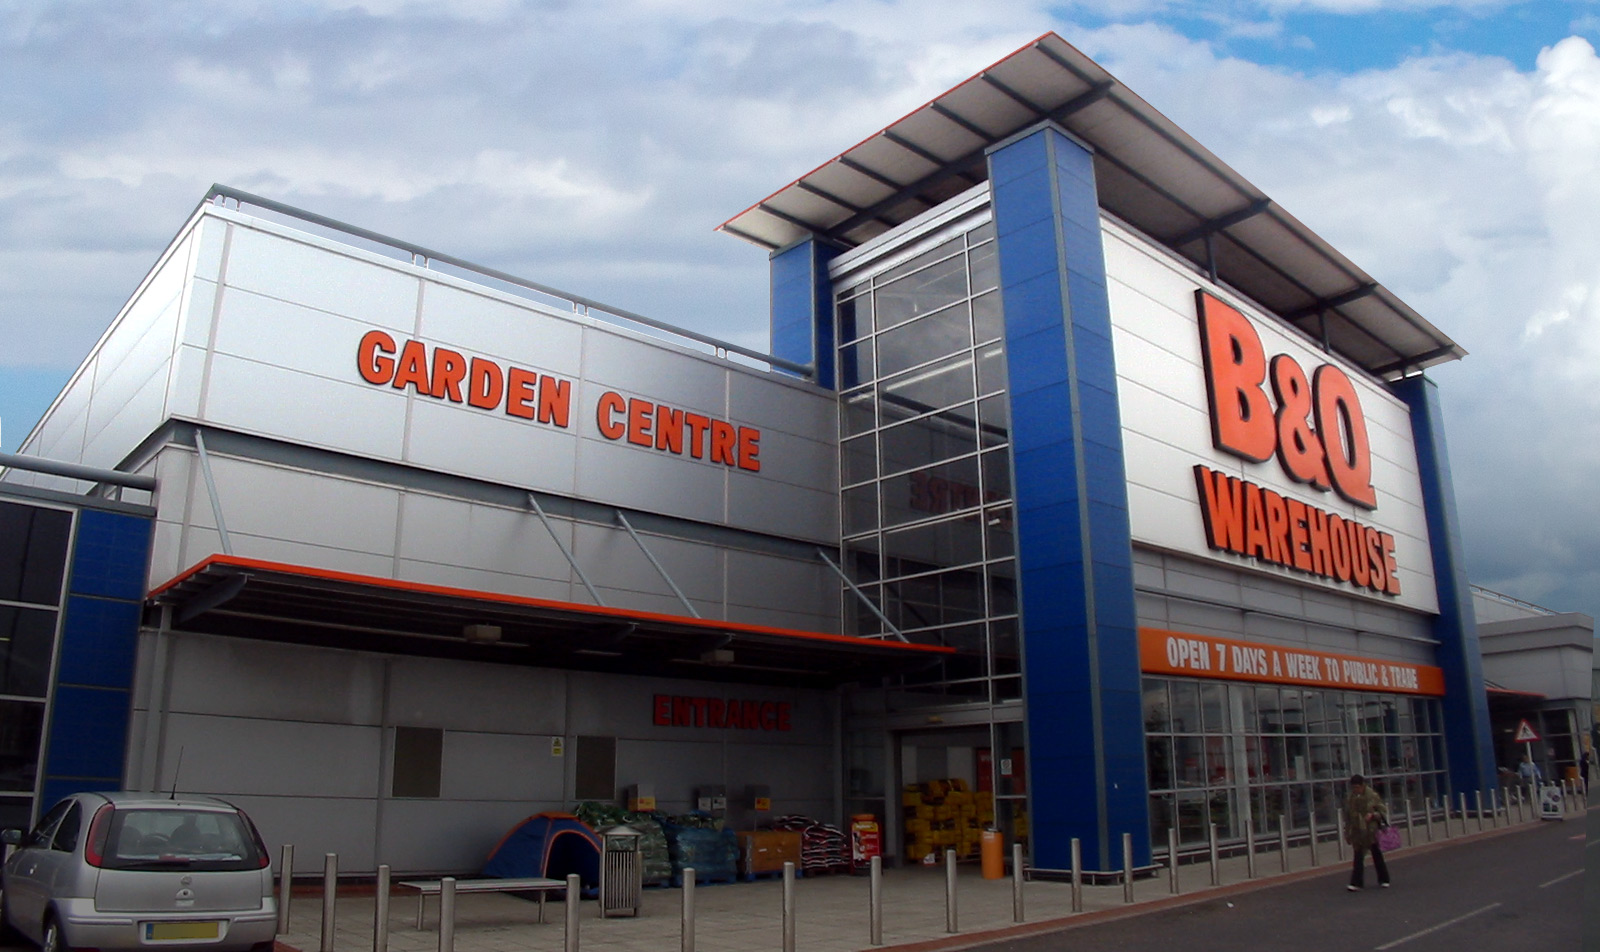 100,000 sq. ft. DIY store as part of a group of EPCs for a large retail warehouse park in Manchester